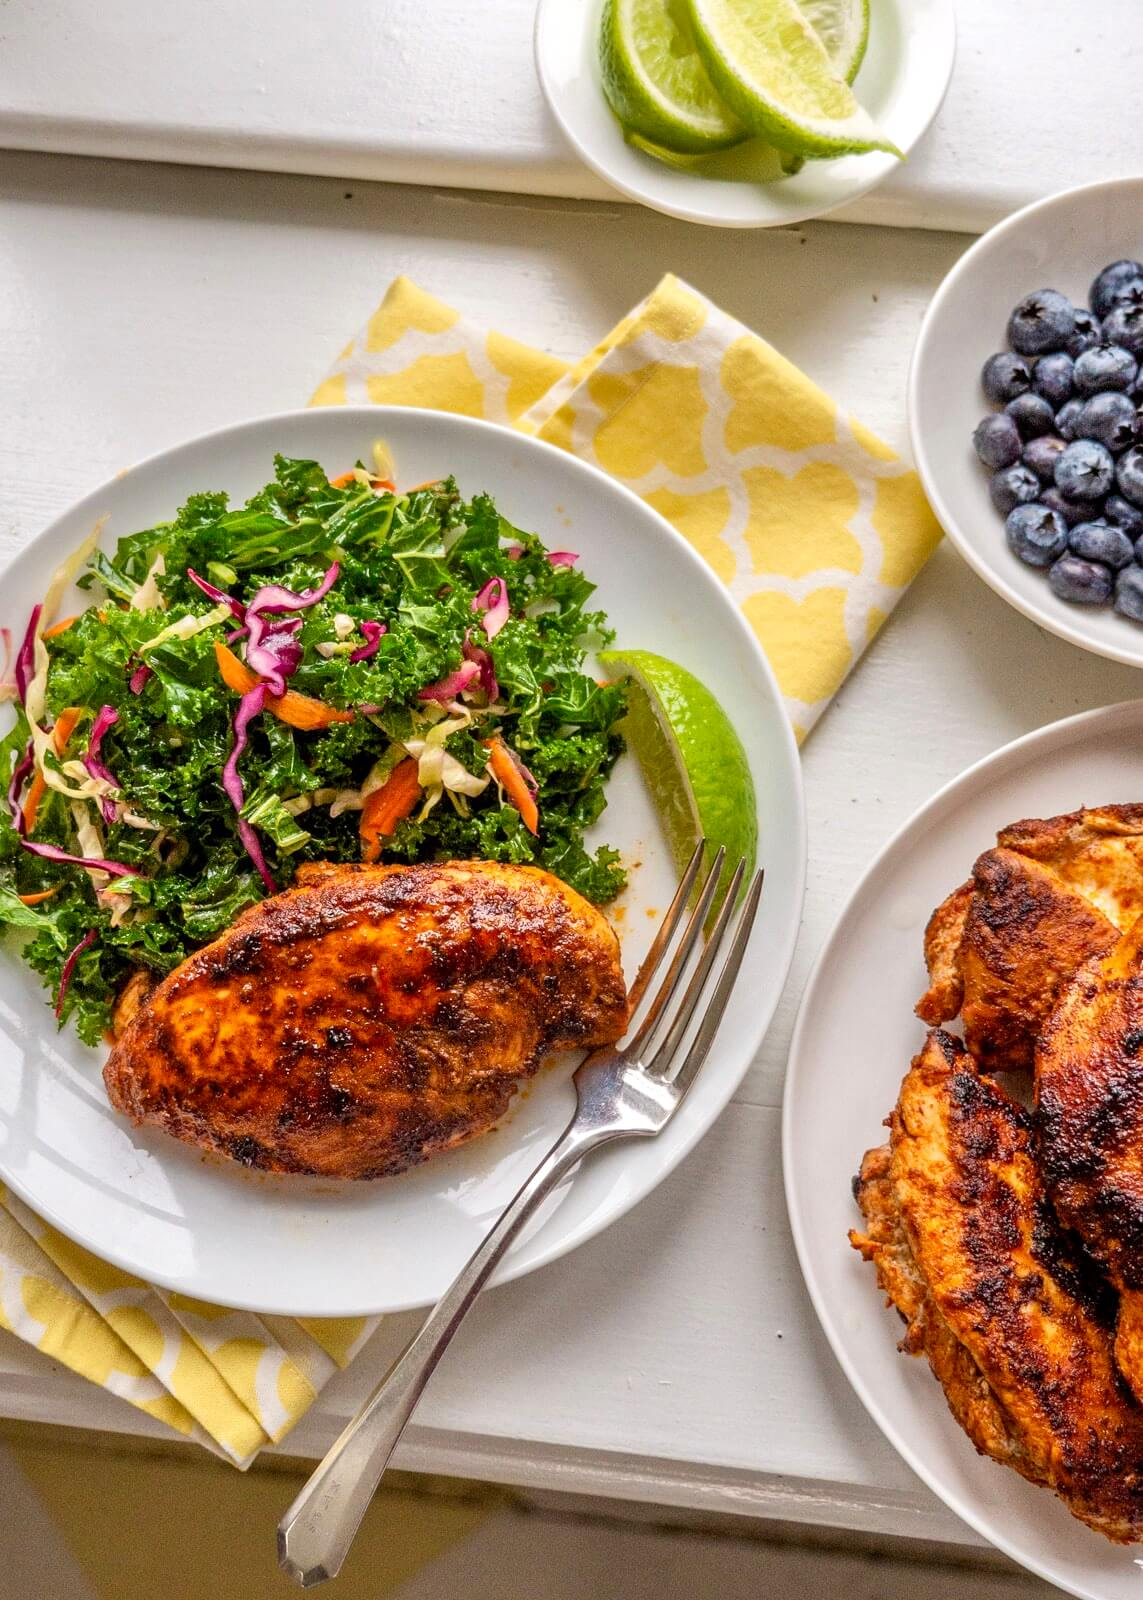 Watching your sodium intake can be challenging, although this recipe proves that you can skip the salt but keep the flavor. Plus, it's easy to make and the leftovers can be transformed into a brand new meal.